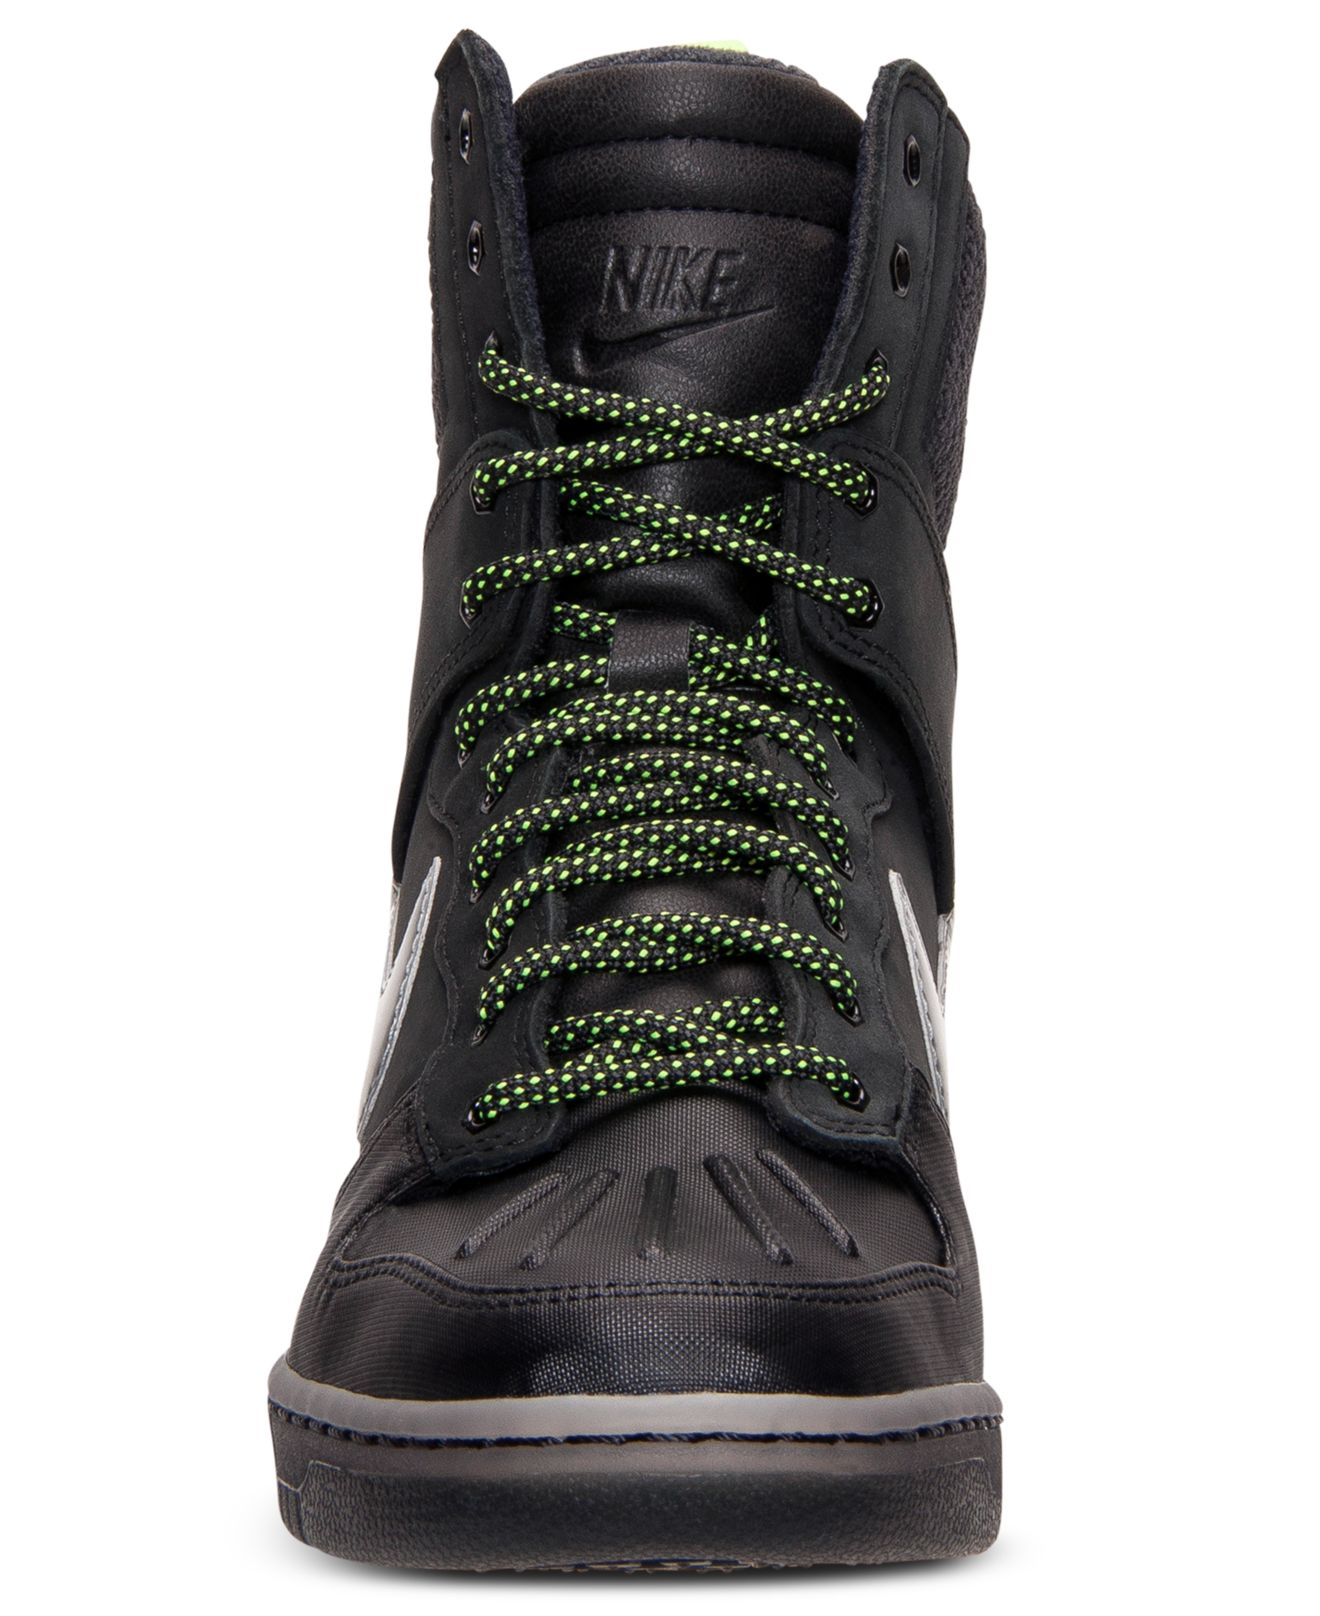 where to buy lyst nike womens dunk sky hi 2.0 sneakerboot from finish l  a8020 3c720 1d5e79ef9075